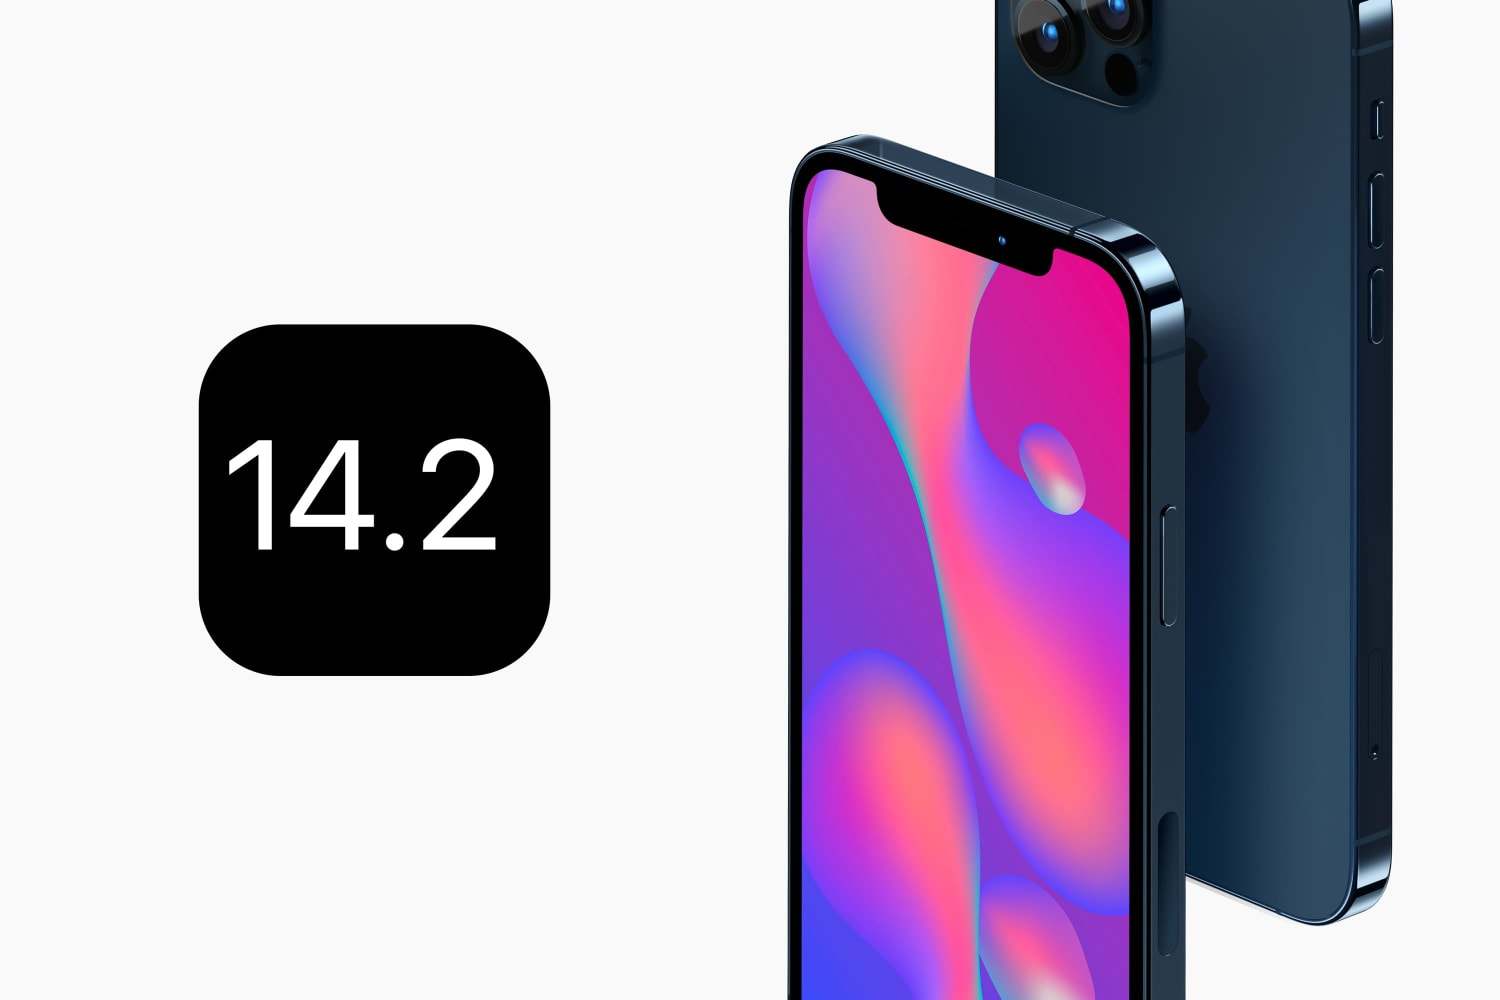 ios-14-2-update-arrives-with-emoji-13-characters-intercom-support-and-more-20201105-1